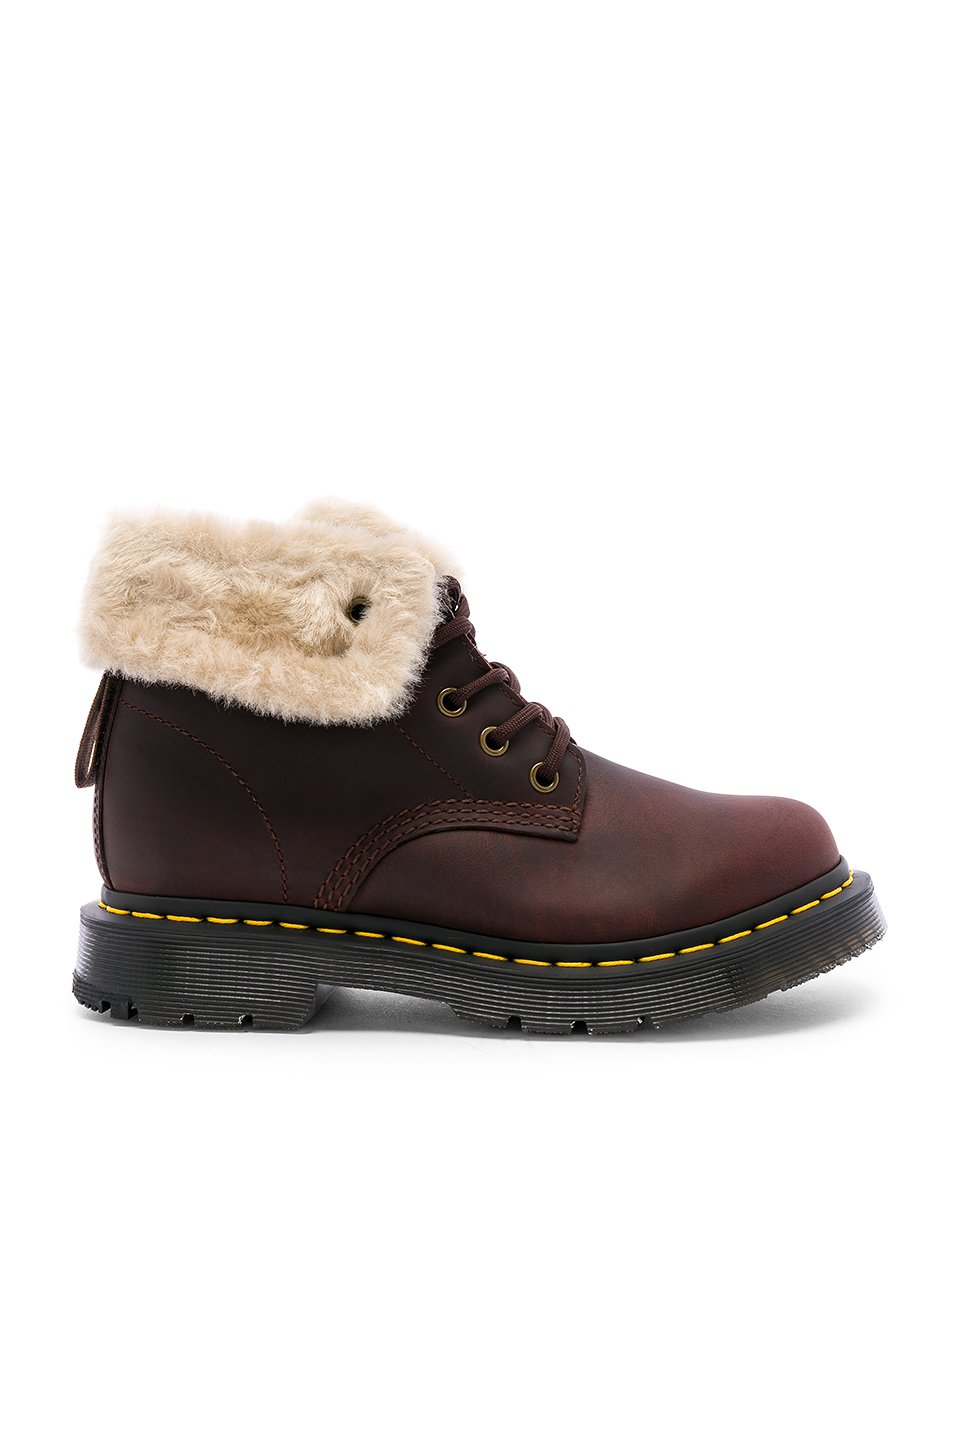 1460 Kolbert Snowplow Boot